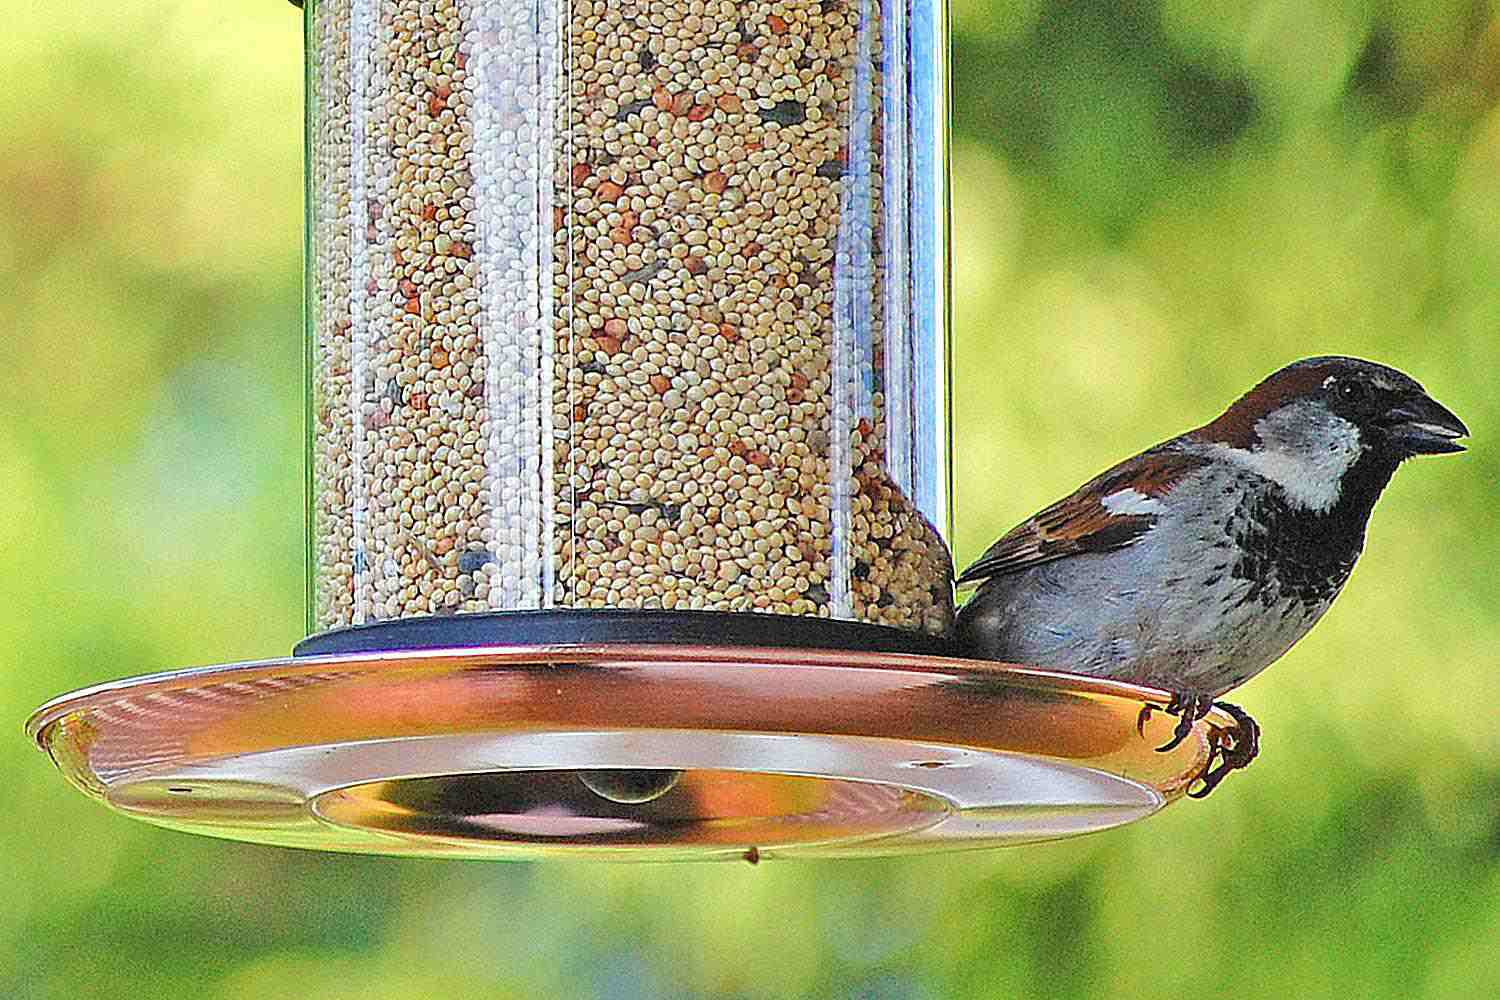 House sparrow on a new bird feeder